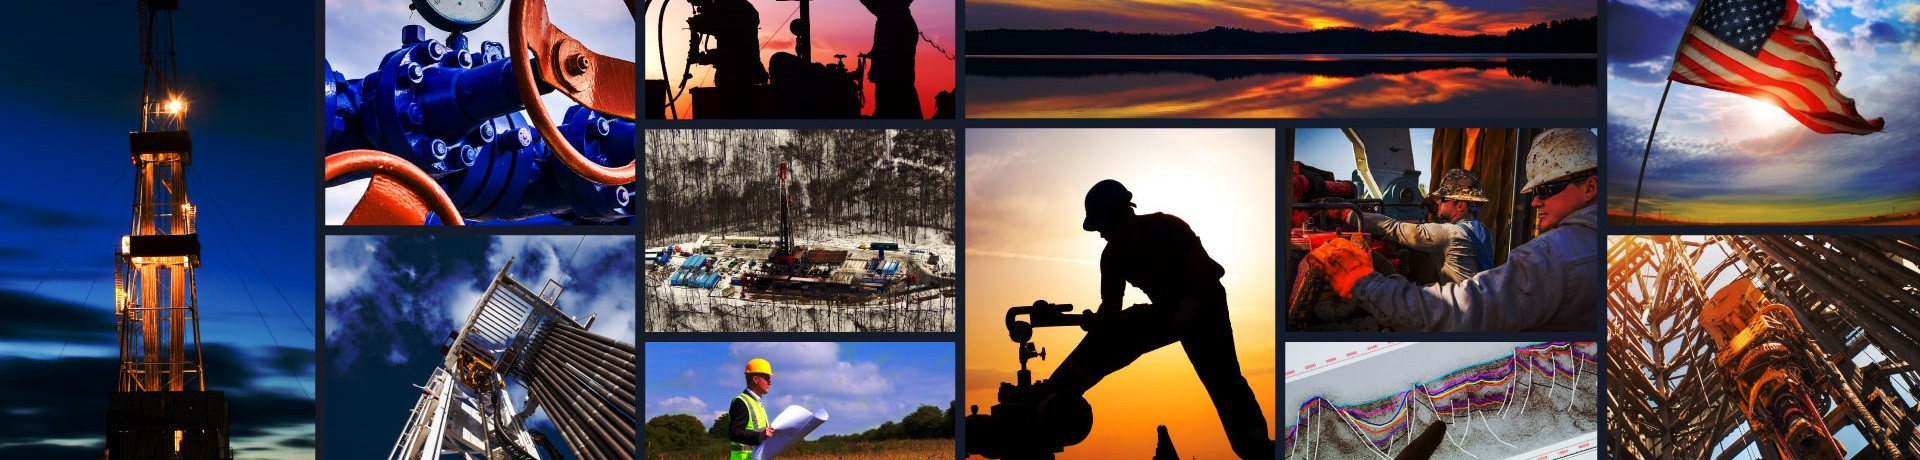 Montage Resources Corporation Banner Image